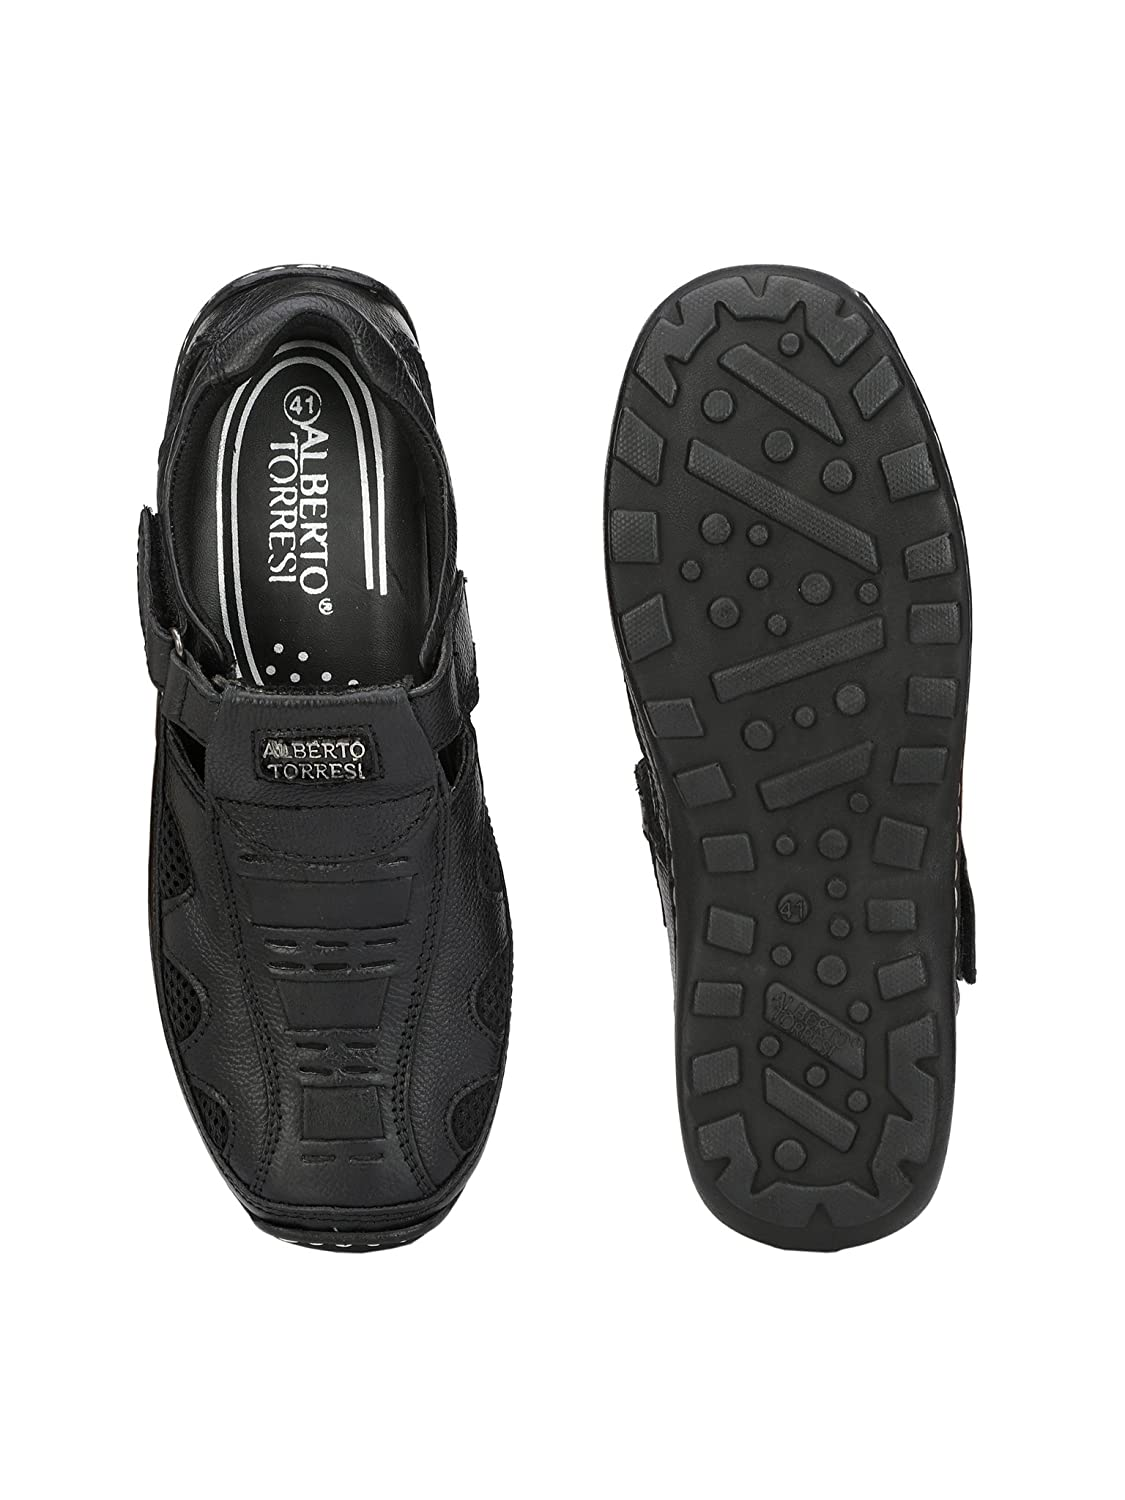 53fe6d0c55a9c Alberto Torresi Antonio Black Sandals  Buy Online at Low Prices in India -  Amazon.in